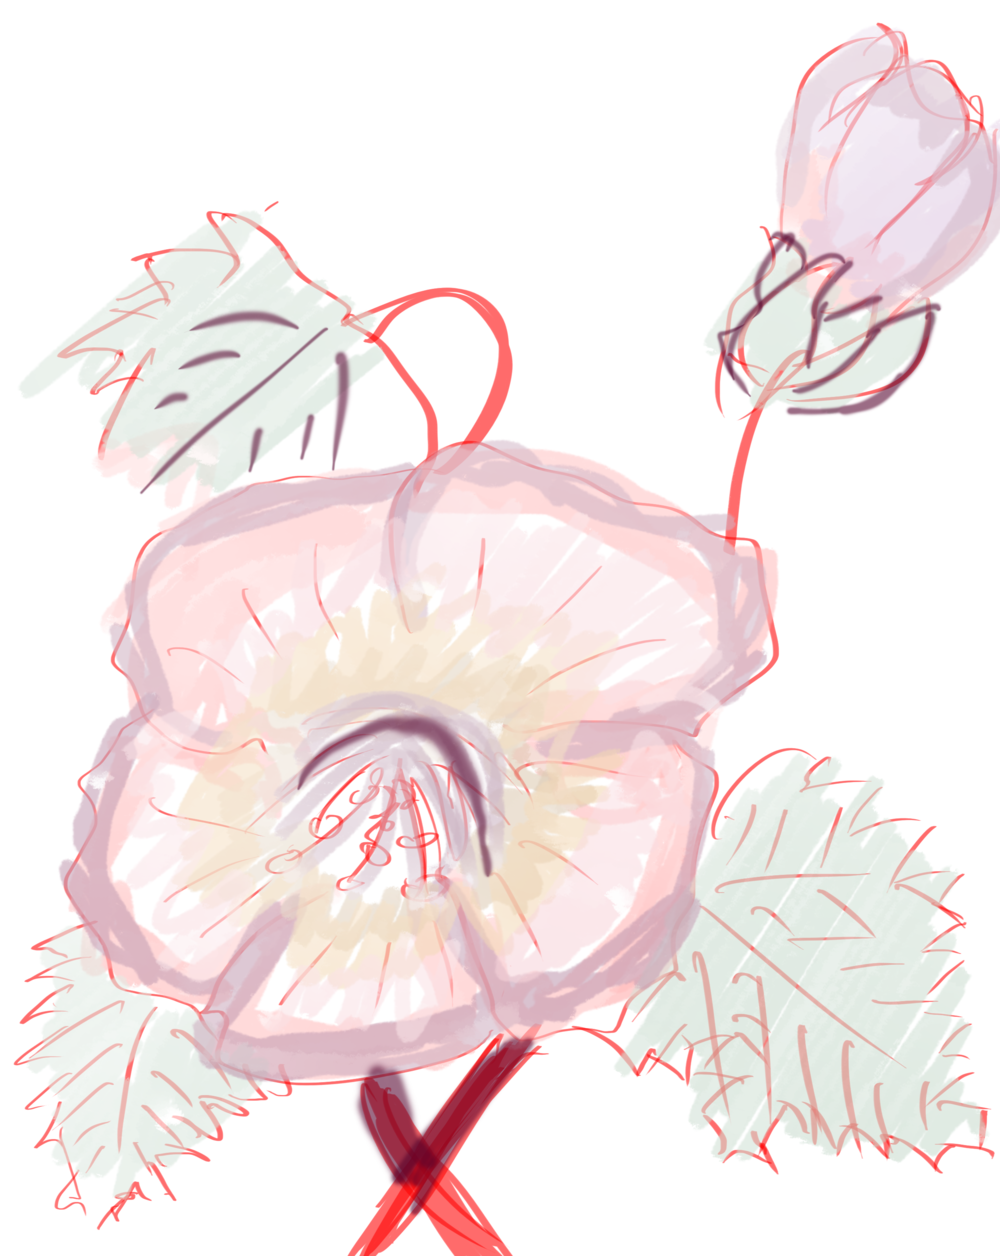 Butt ugly flower for reference, drawn with a Wacom Cintiq on Photoshop CC